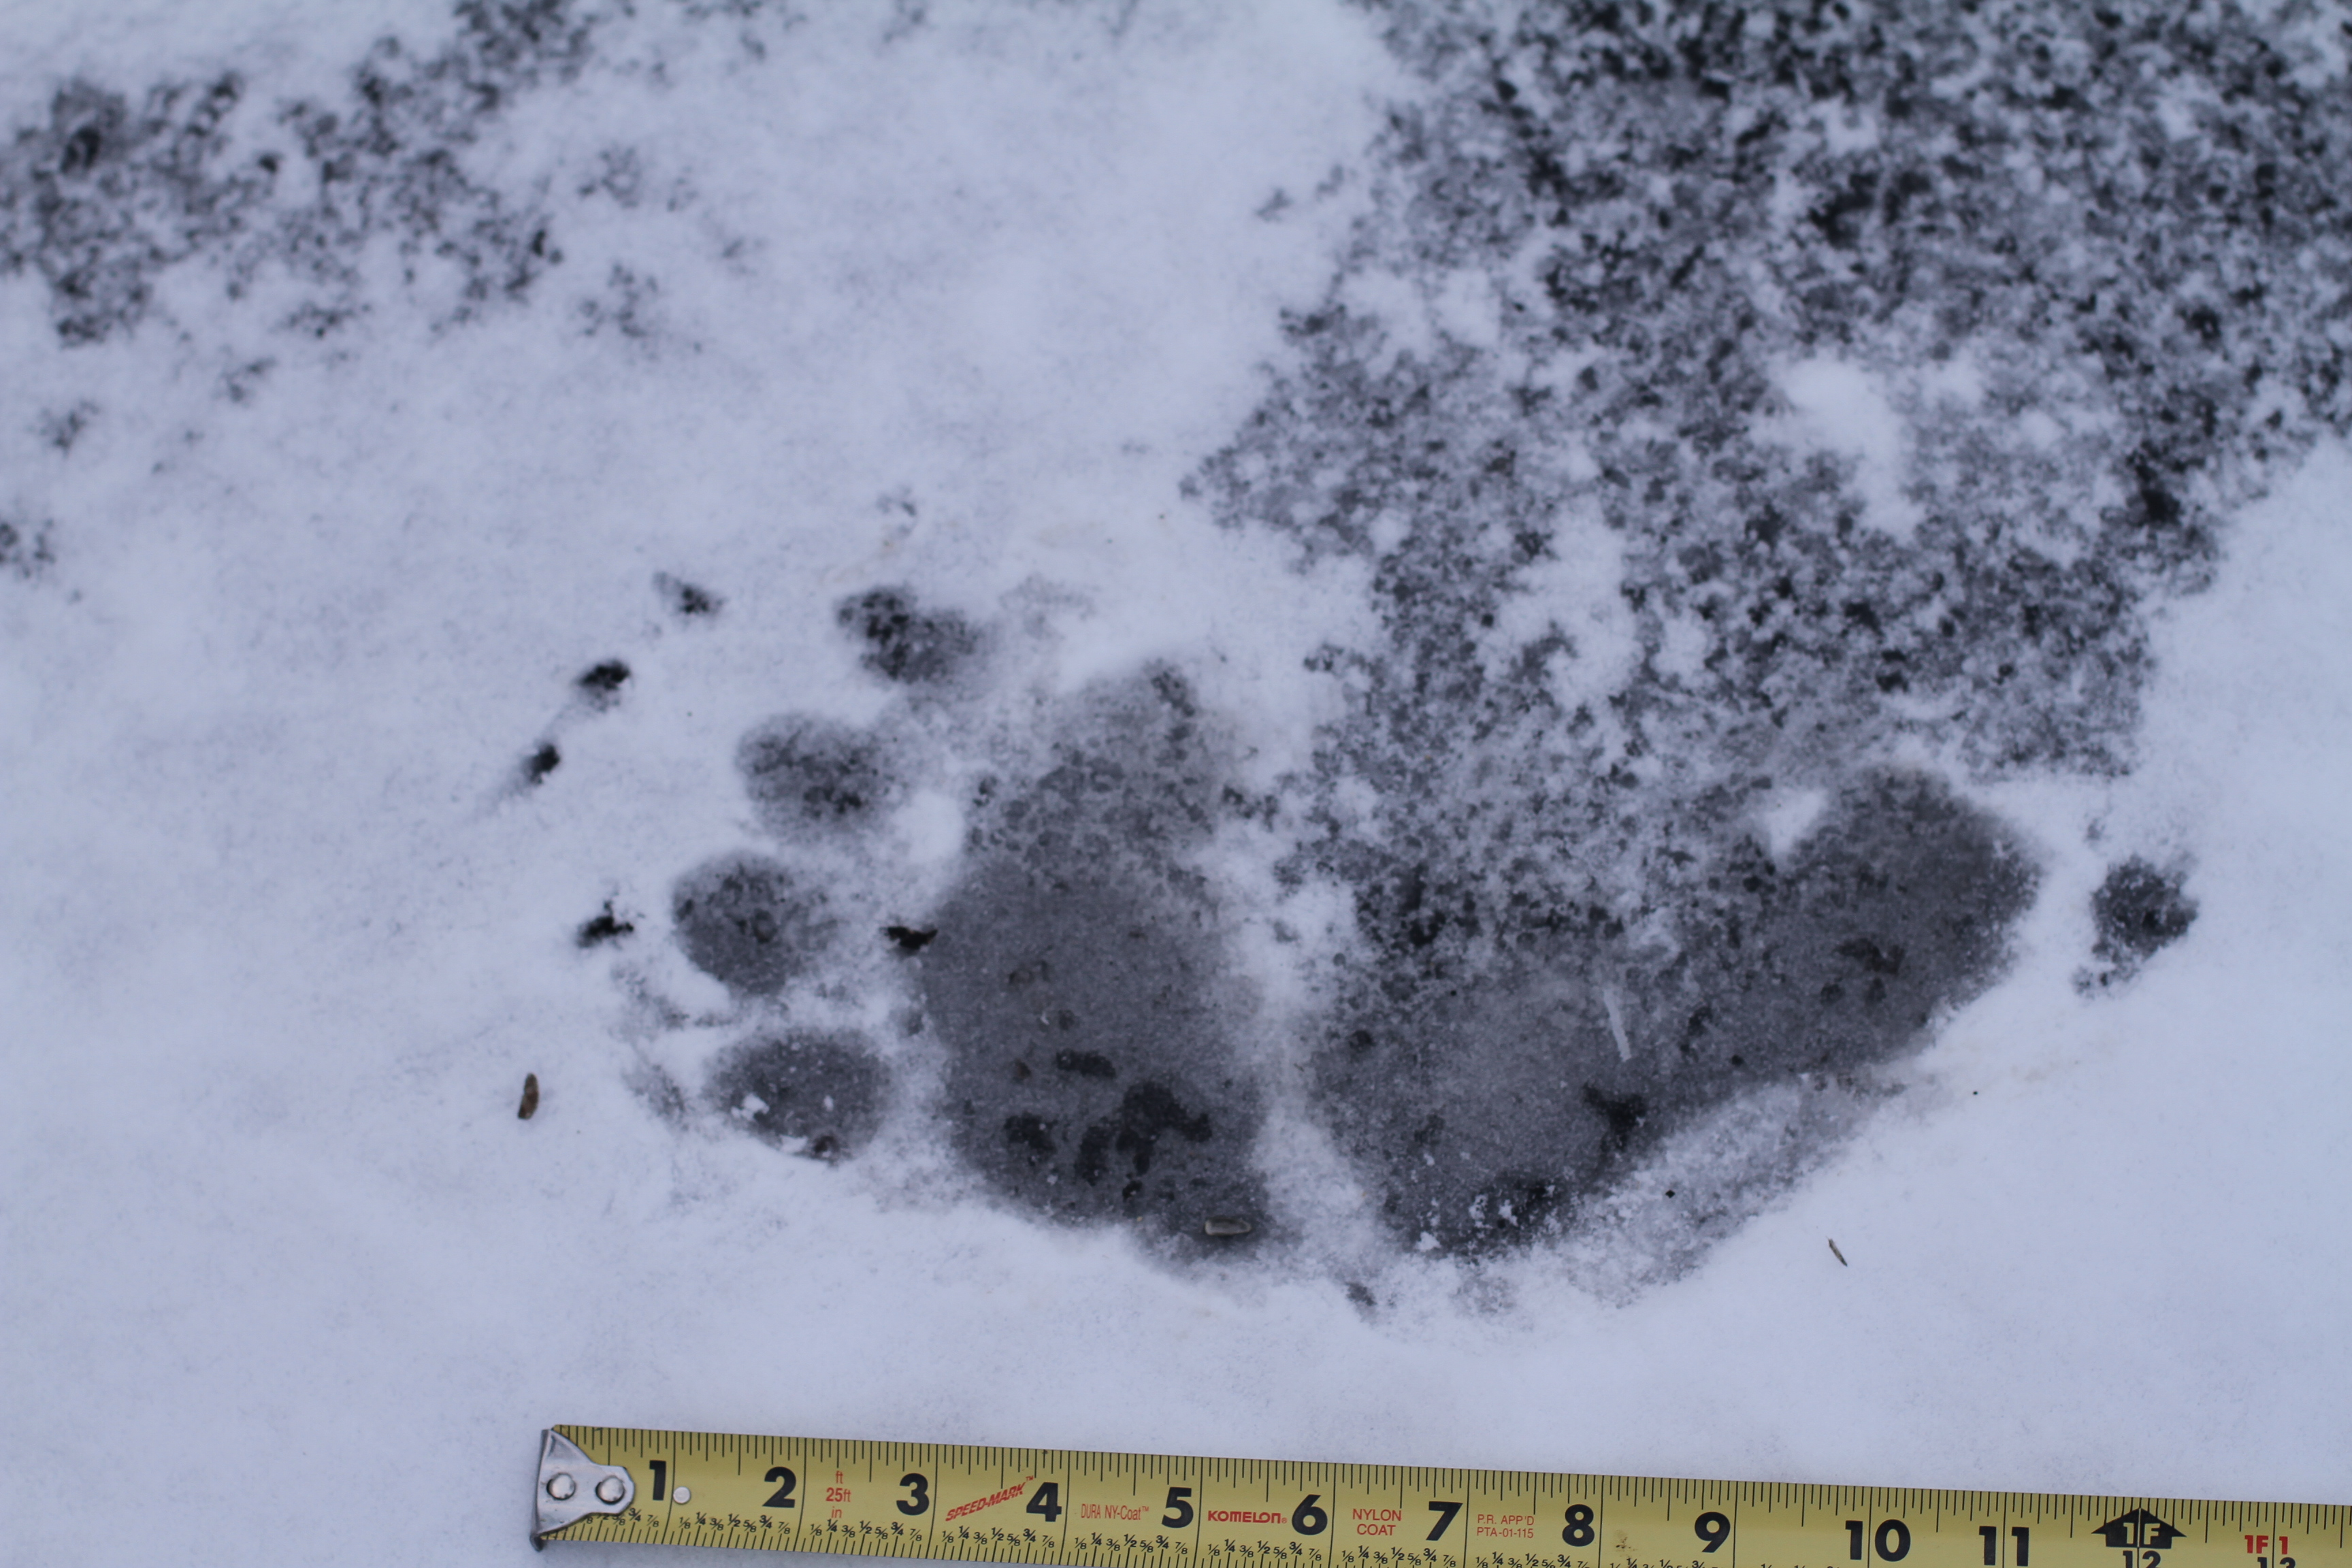 Black Bear Prints in Snow